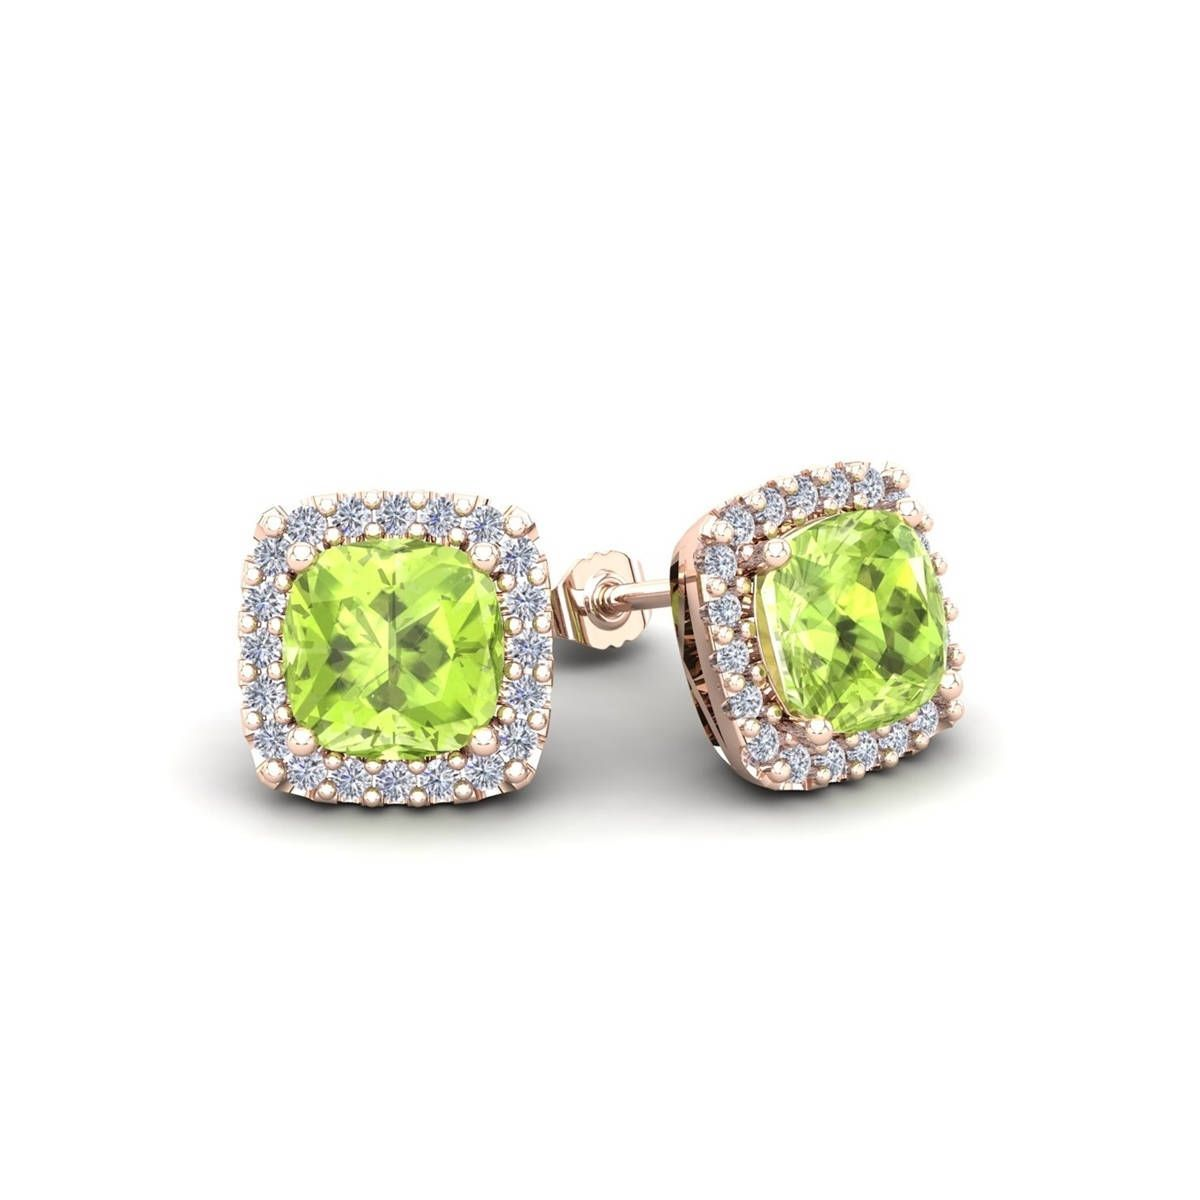 2 Carat Tgw Cushion Cut Peridot And Halo Diamond Stud Earrings In 14 Karat White Yellow Rose Gold